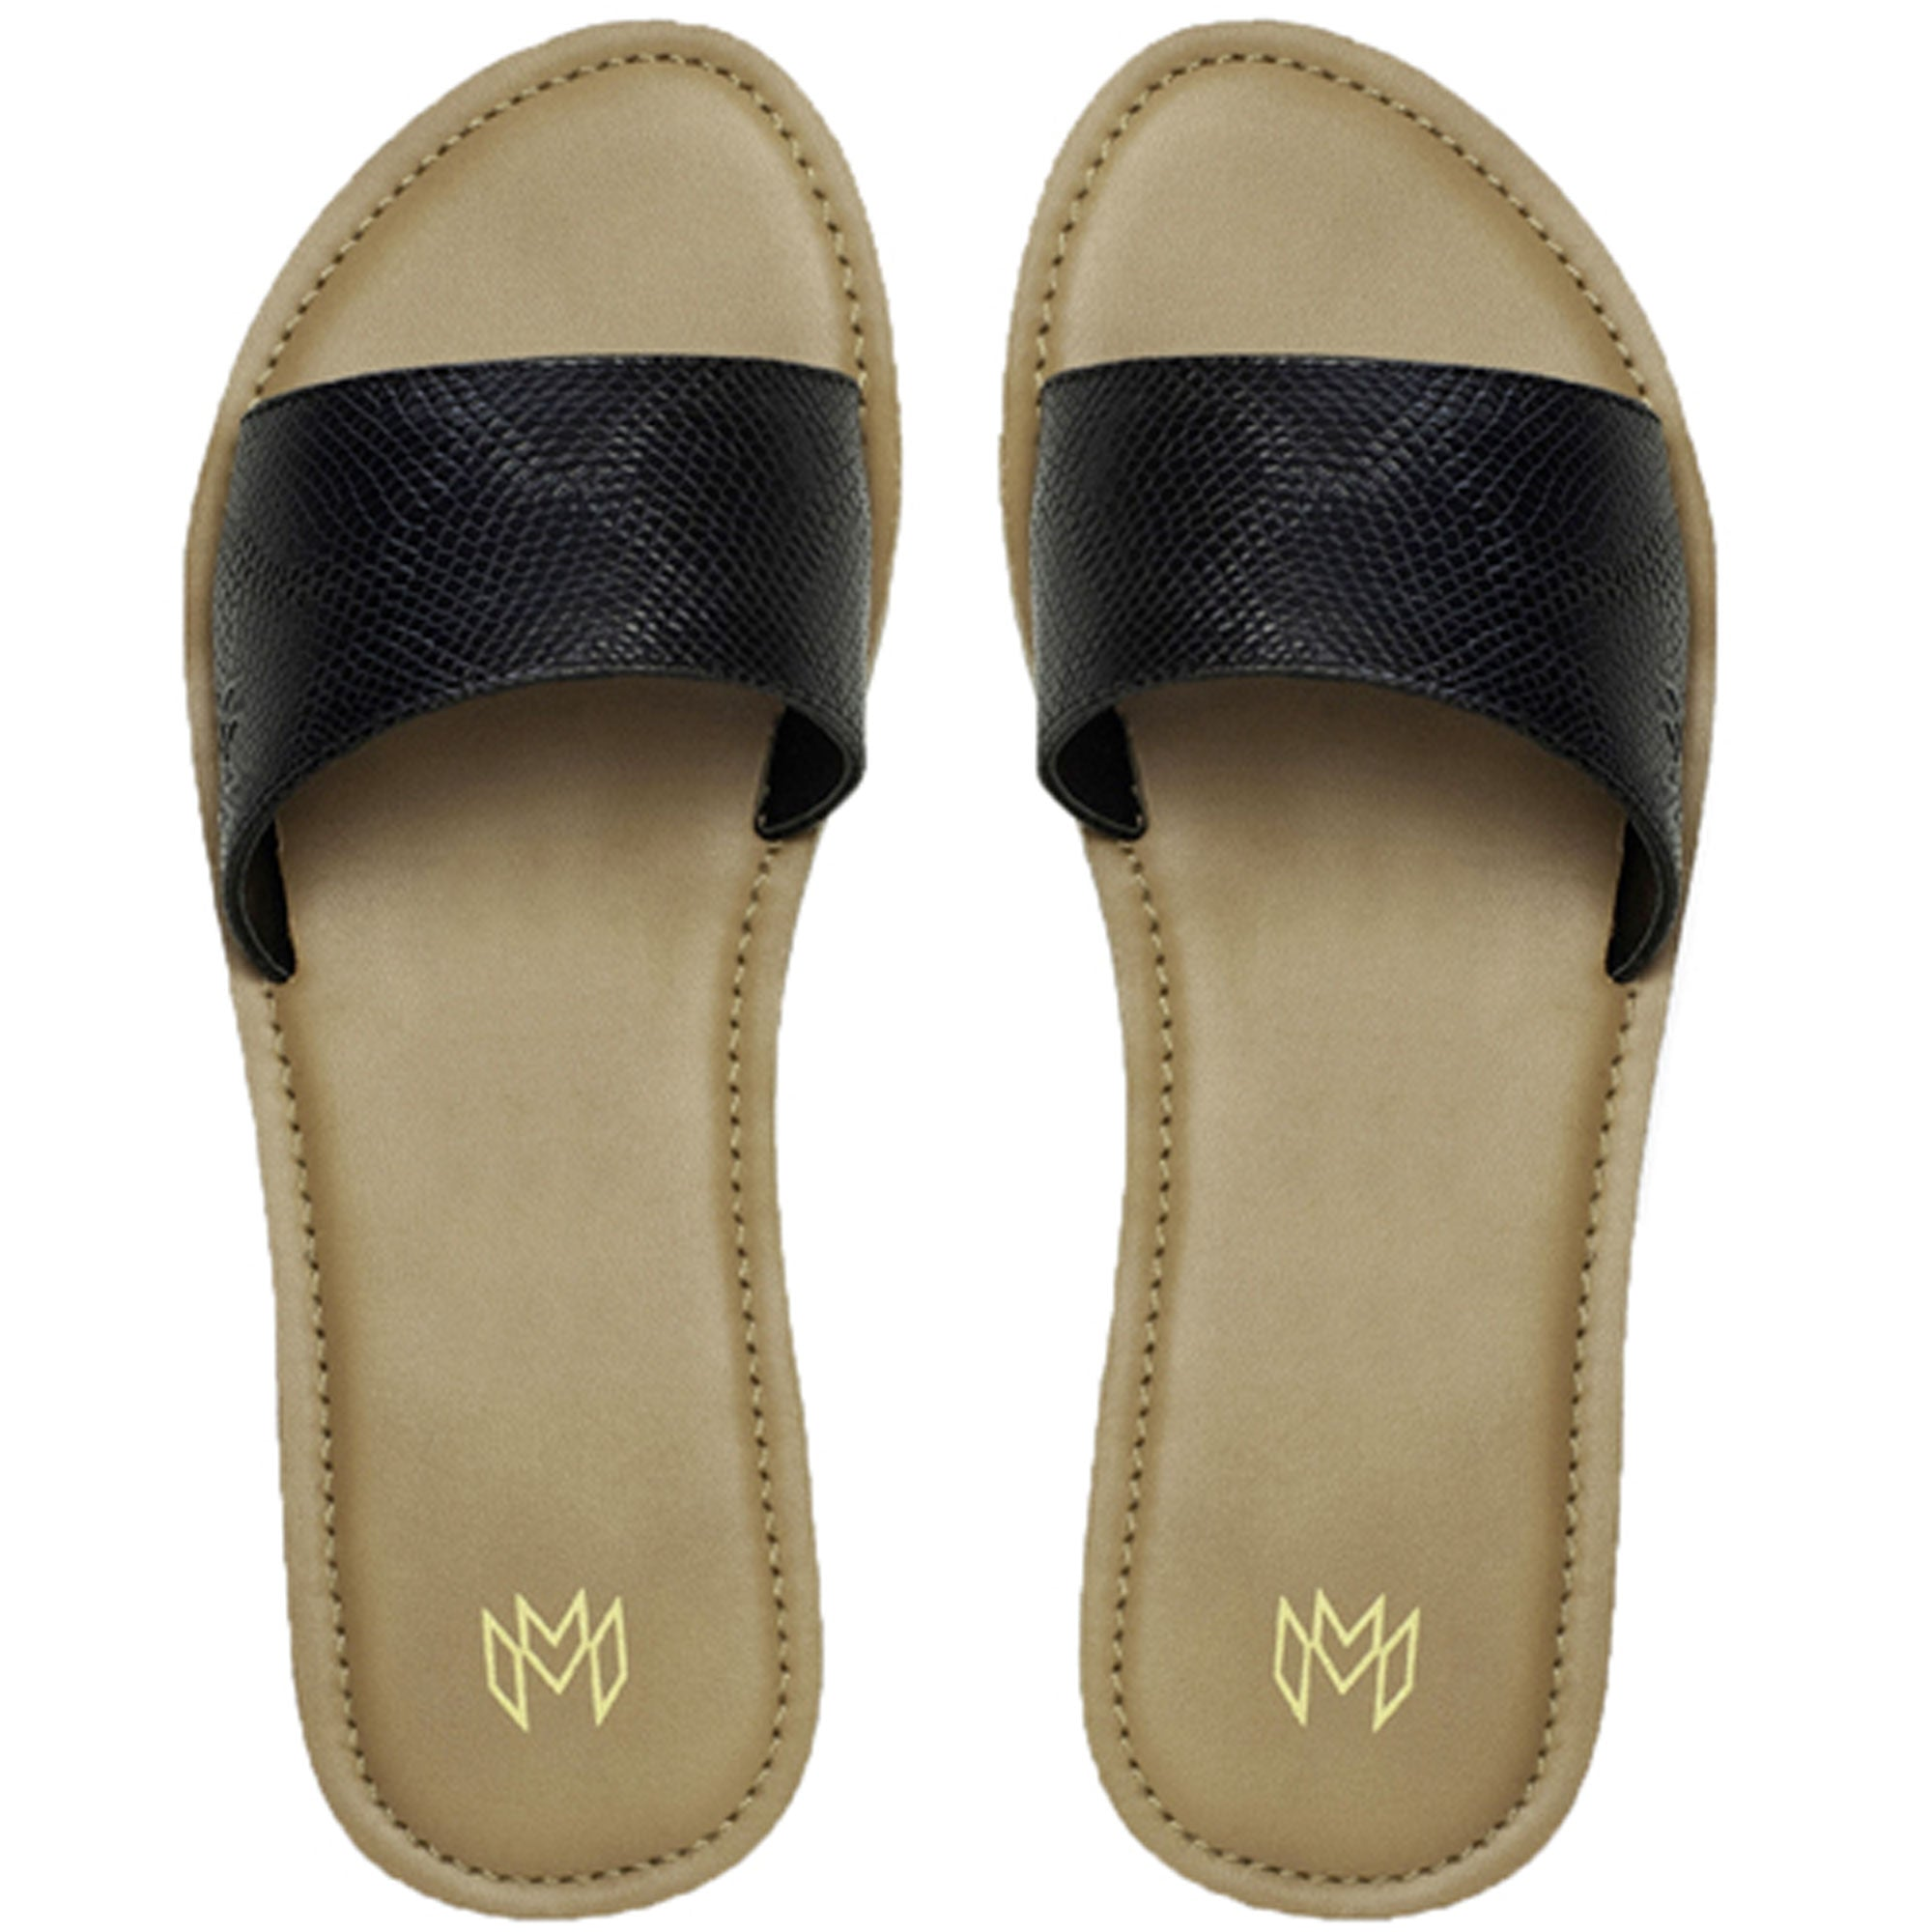 Malvados Icon Billie Women's Sandals